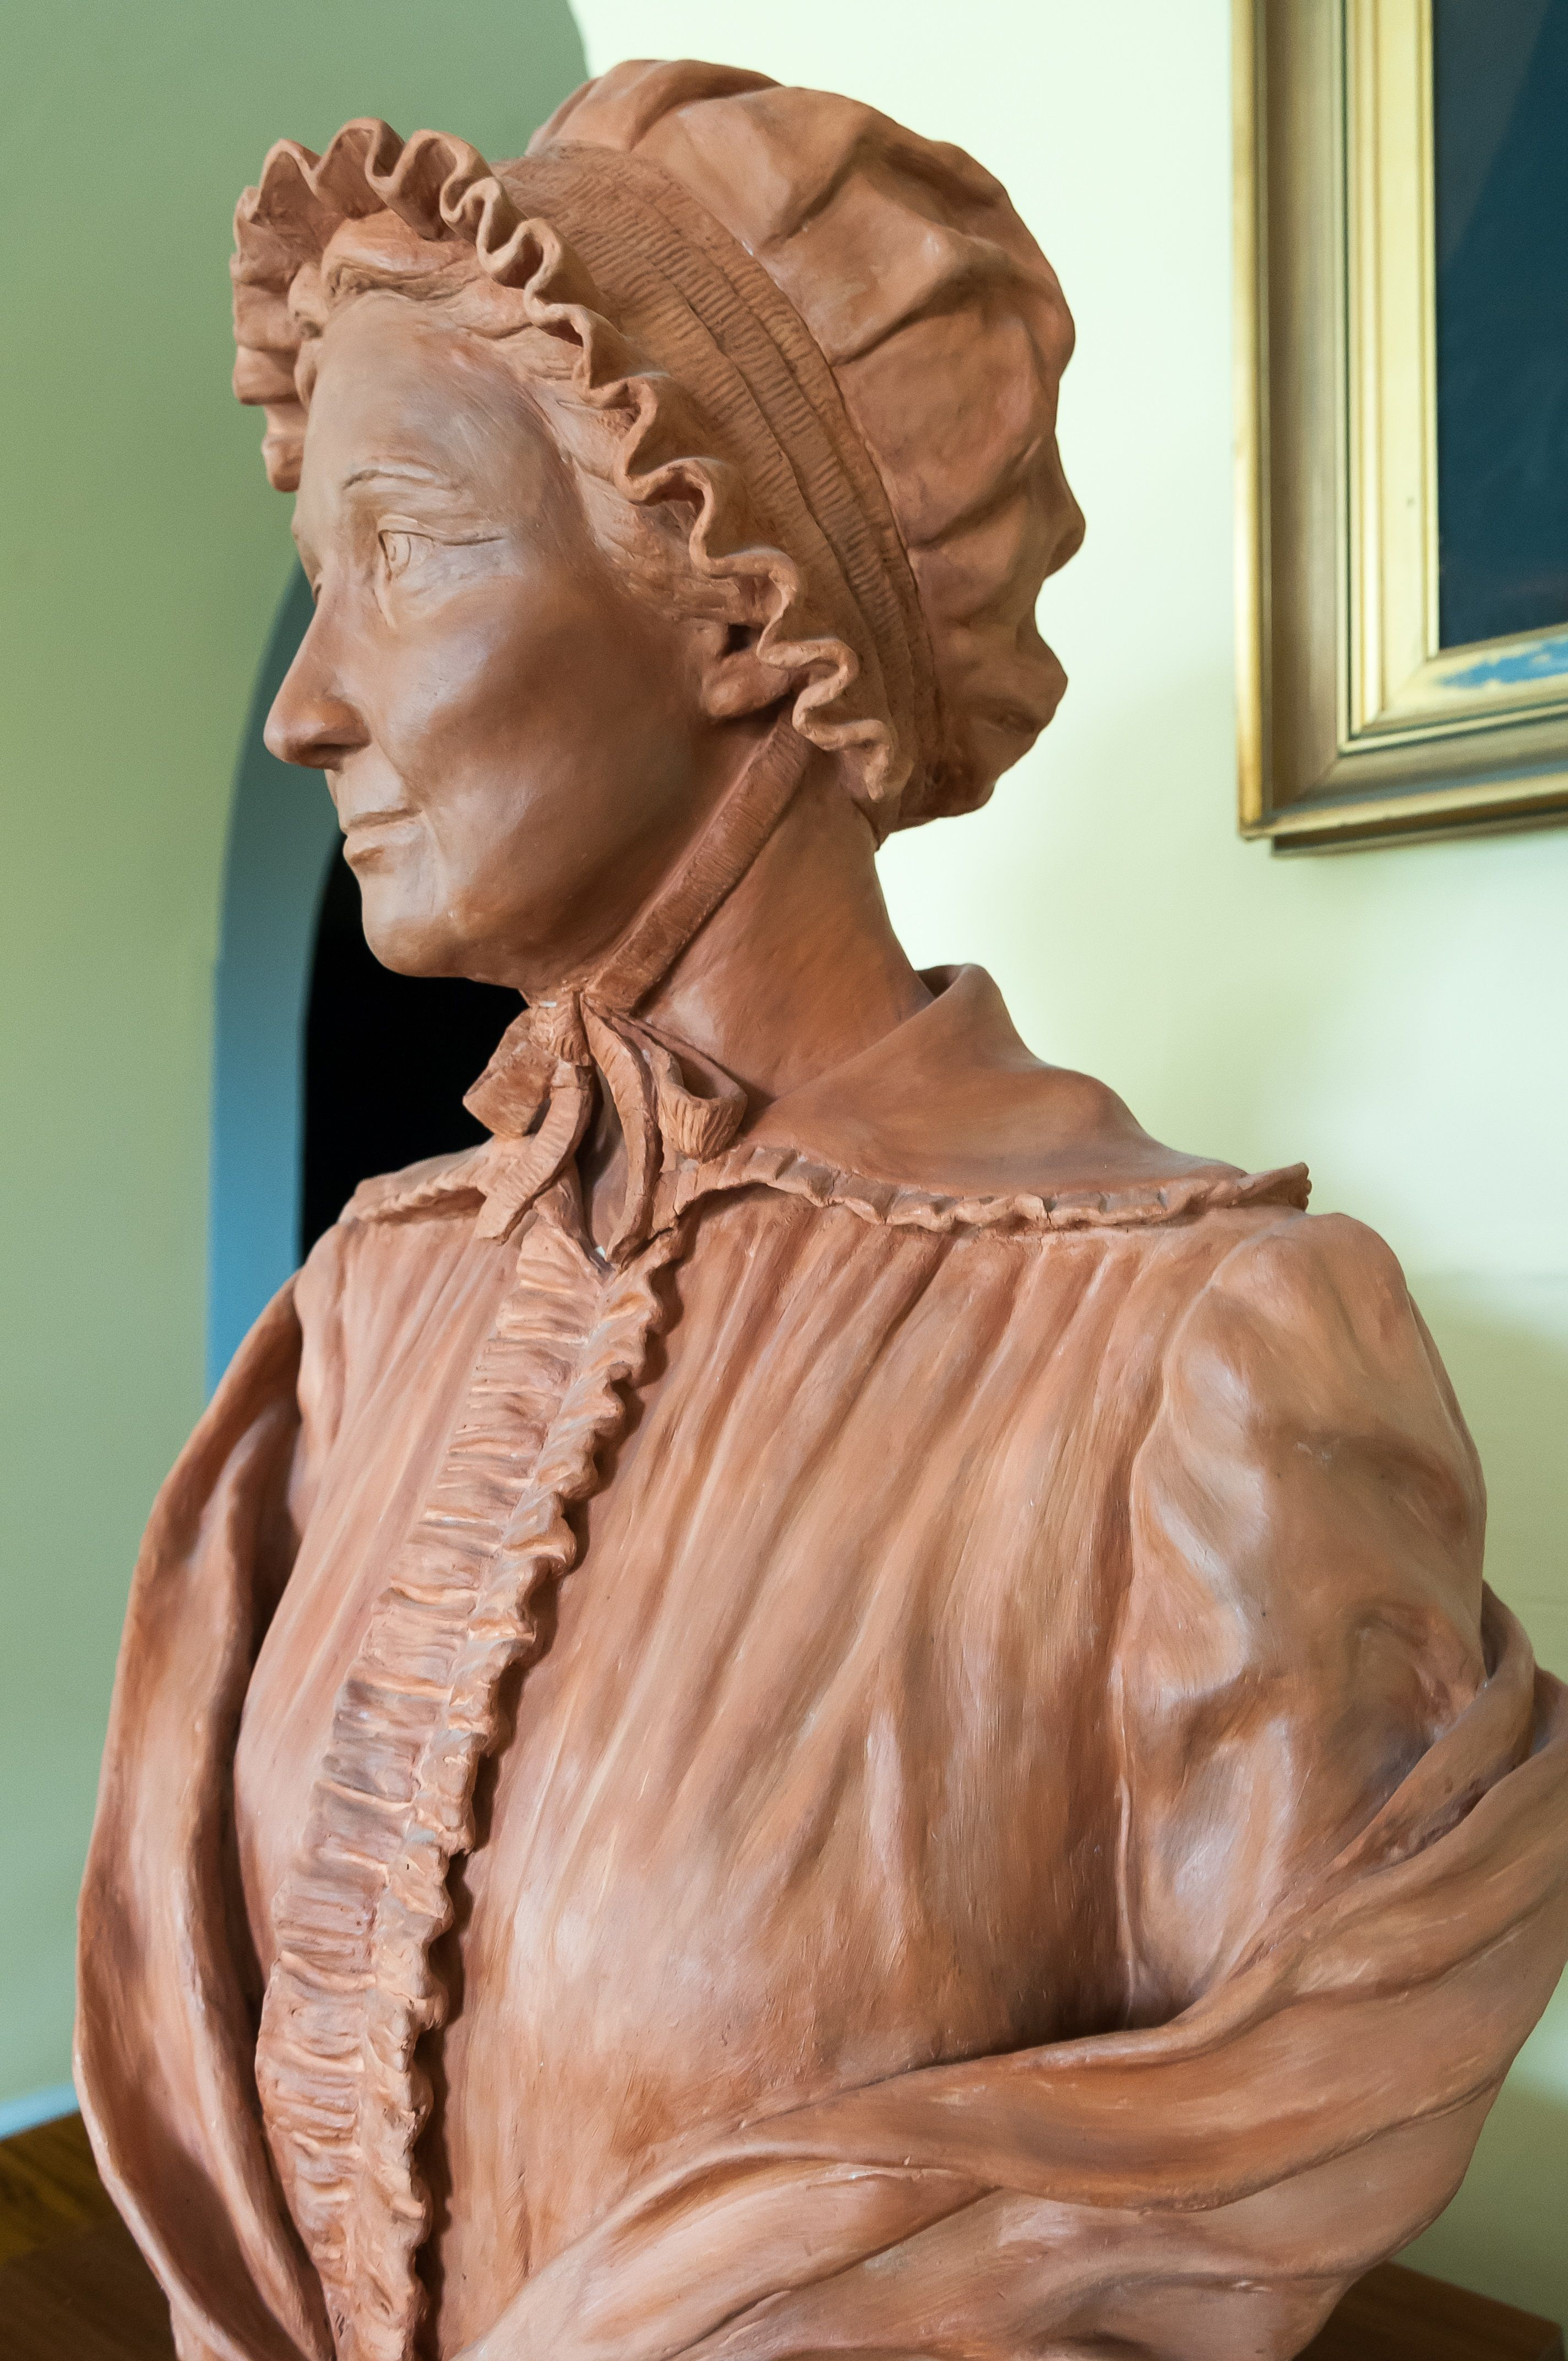 ICONIC: A statue of Mary Ann McCracken in the grounds of Belfast City Hall has been approved